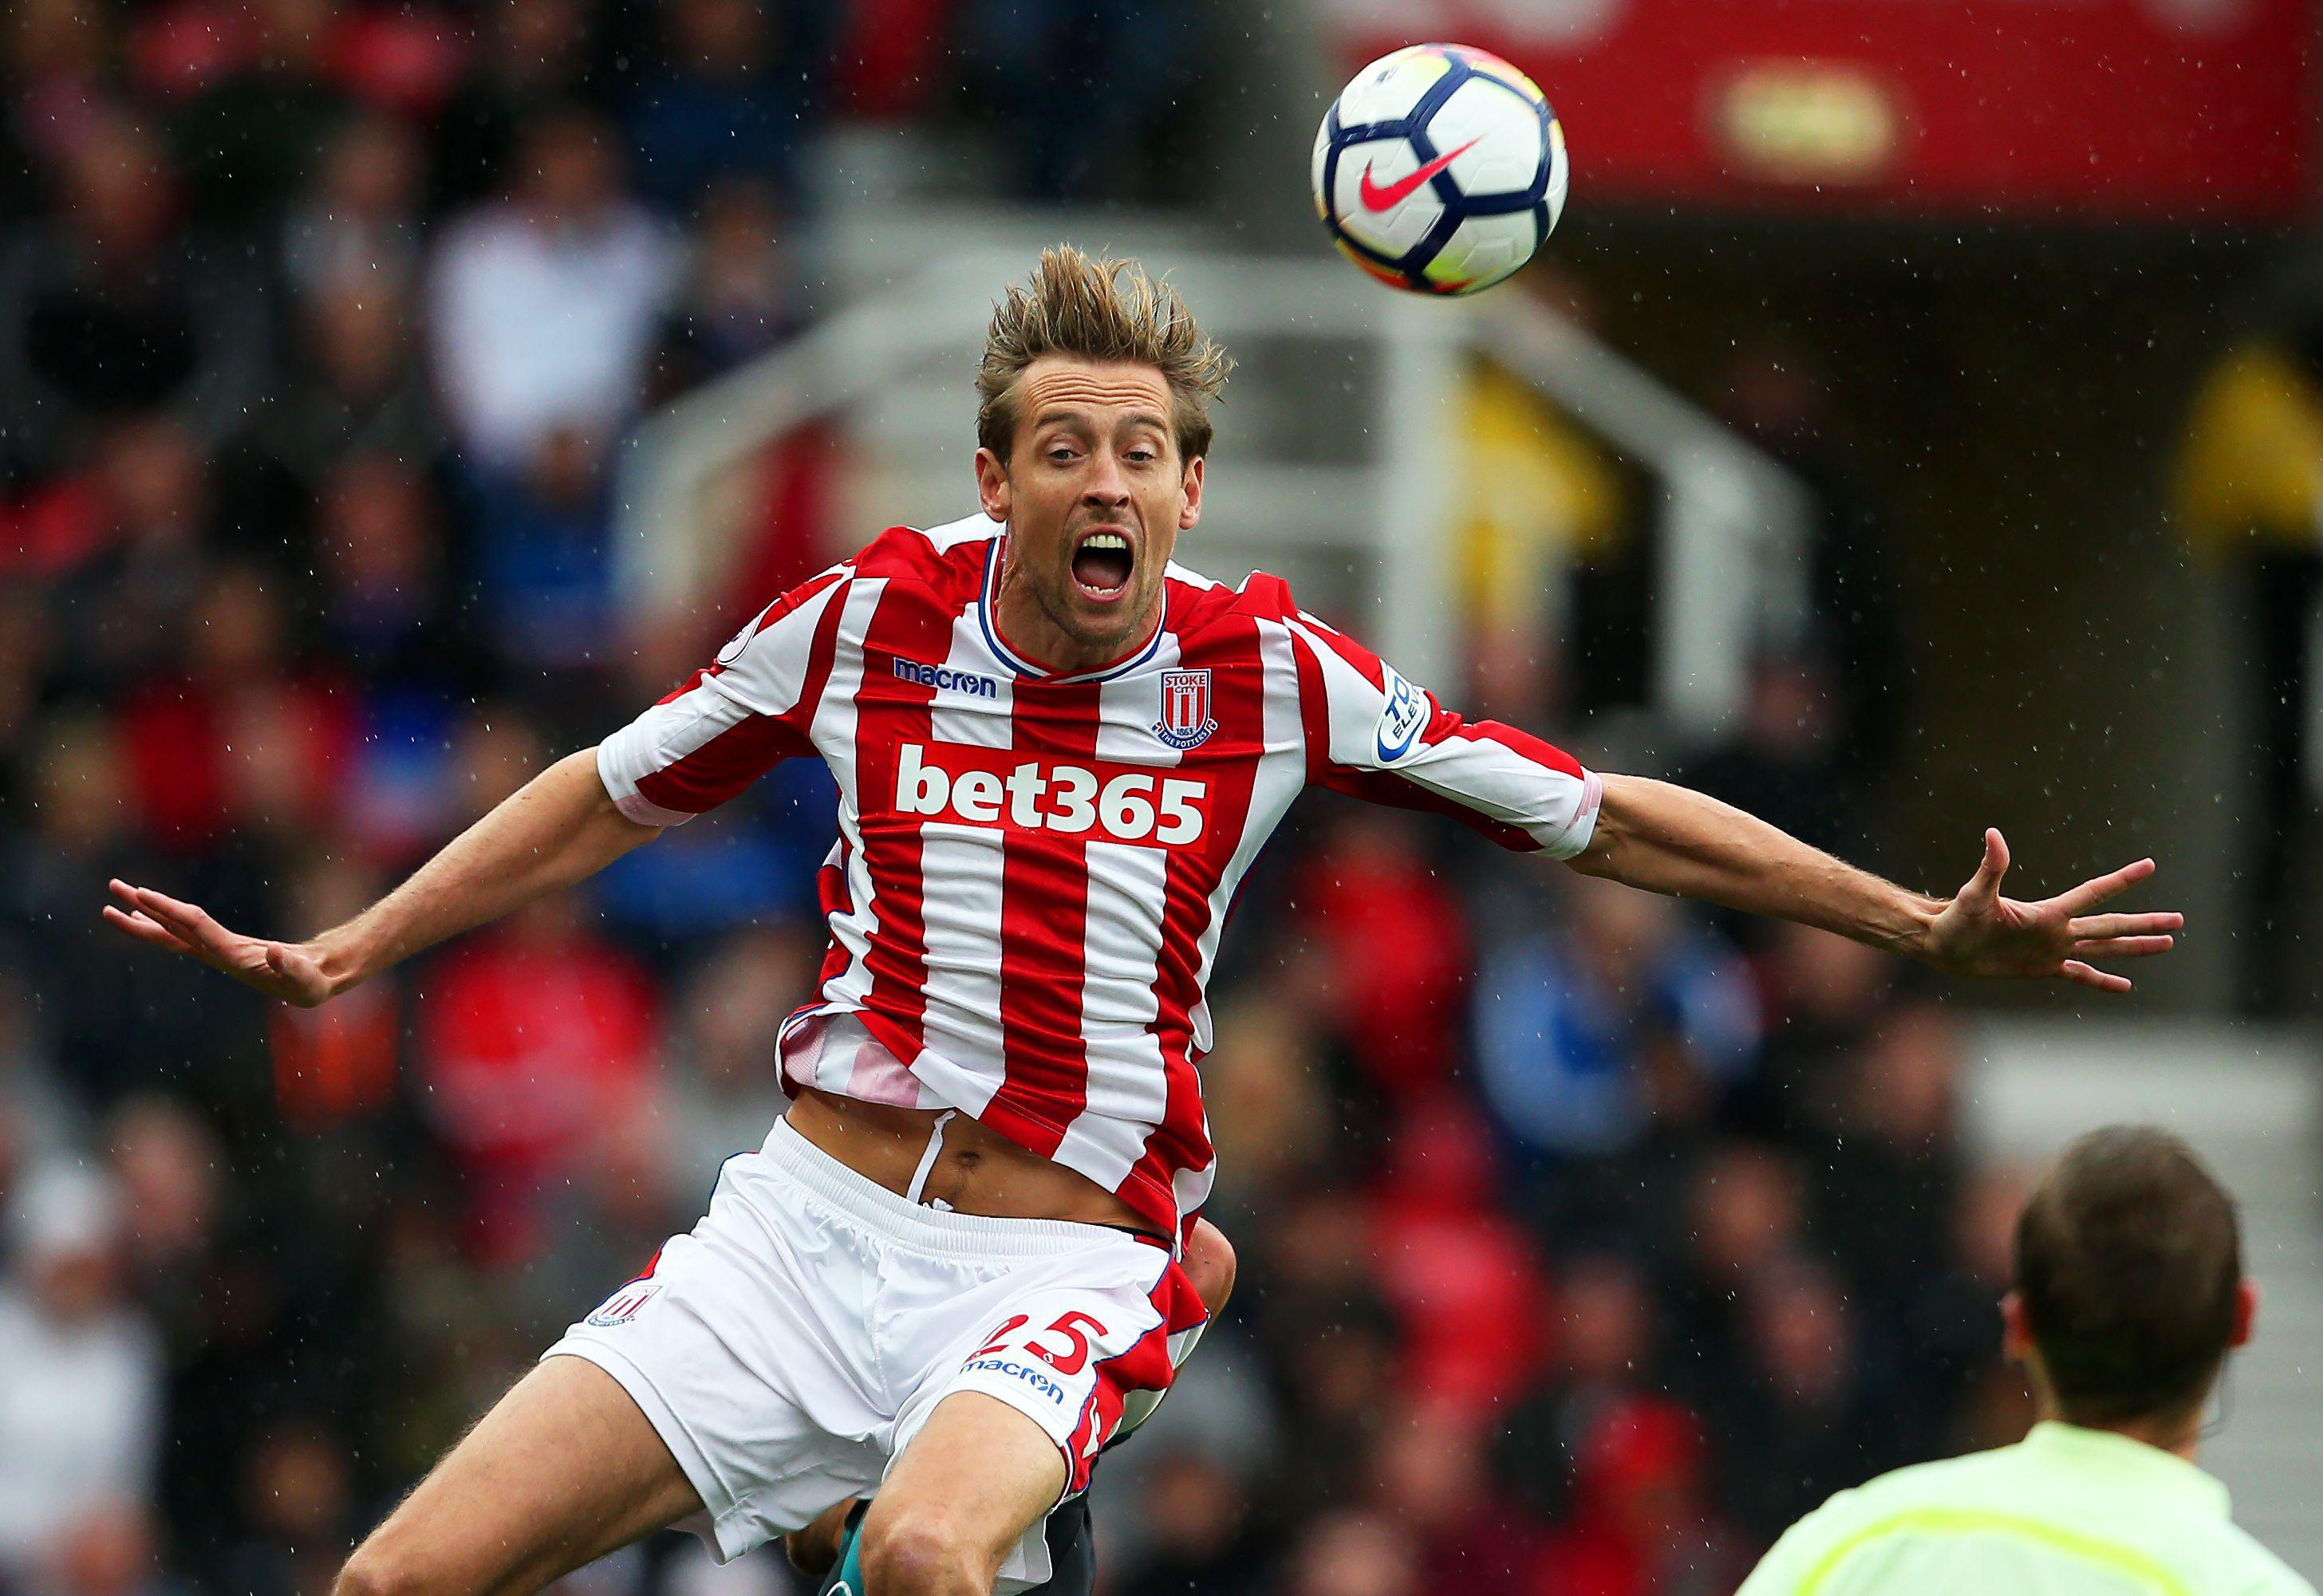 Crouch doing what he does best